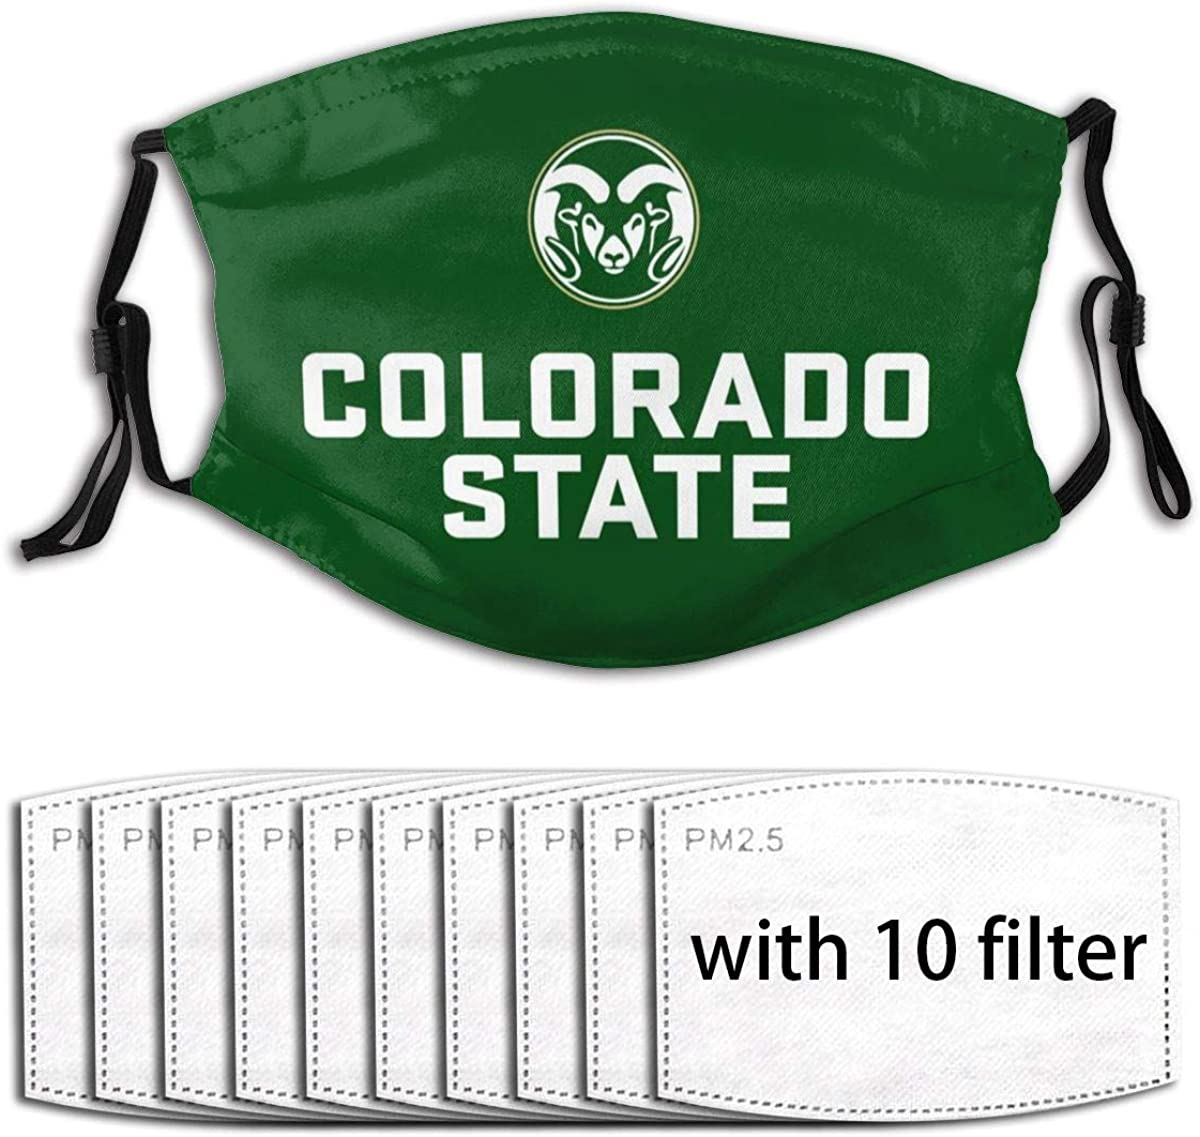 Lasgo Waterproof Face Cover Removable Mouth Cover for Colorado State University Fans Women Men with 10 Filter